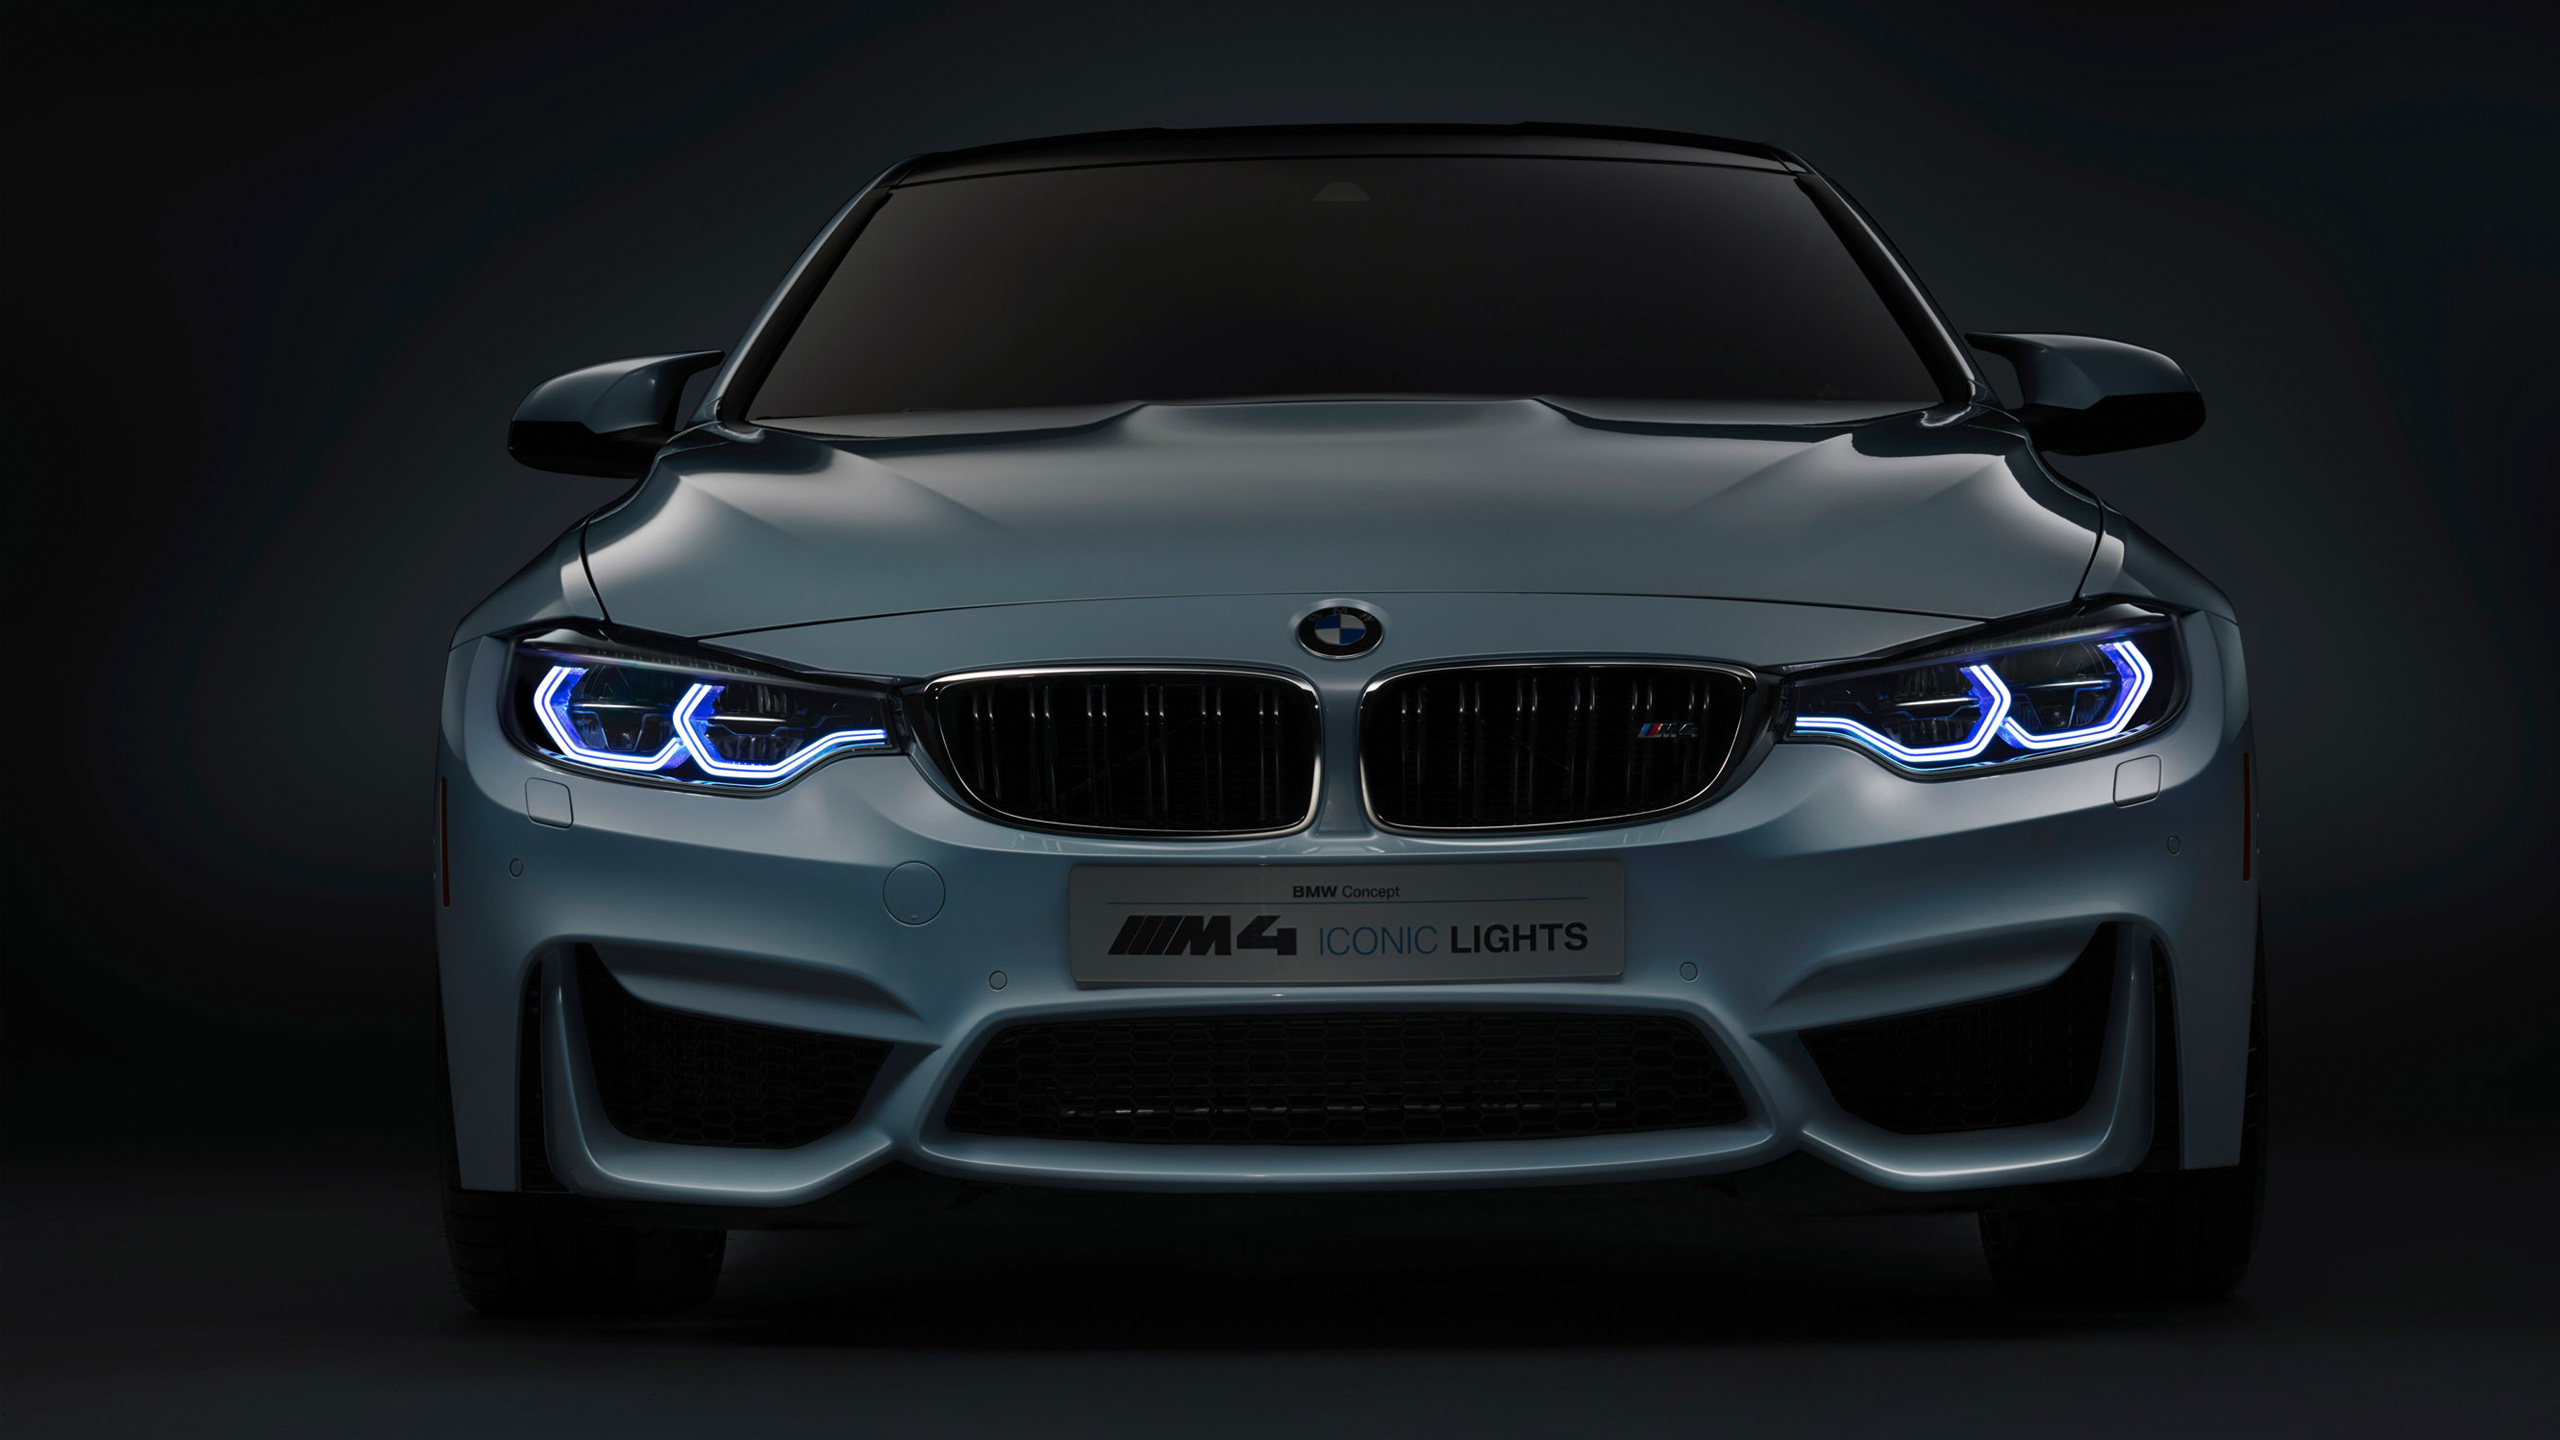 2015 Bmw M4 Laser Light Specs Price Release Date Redesign